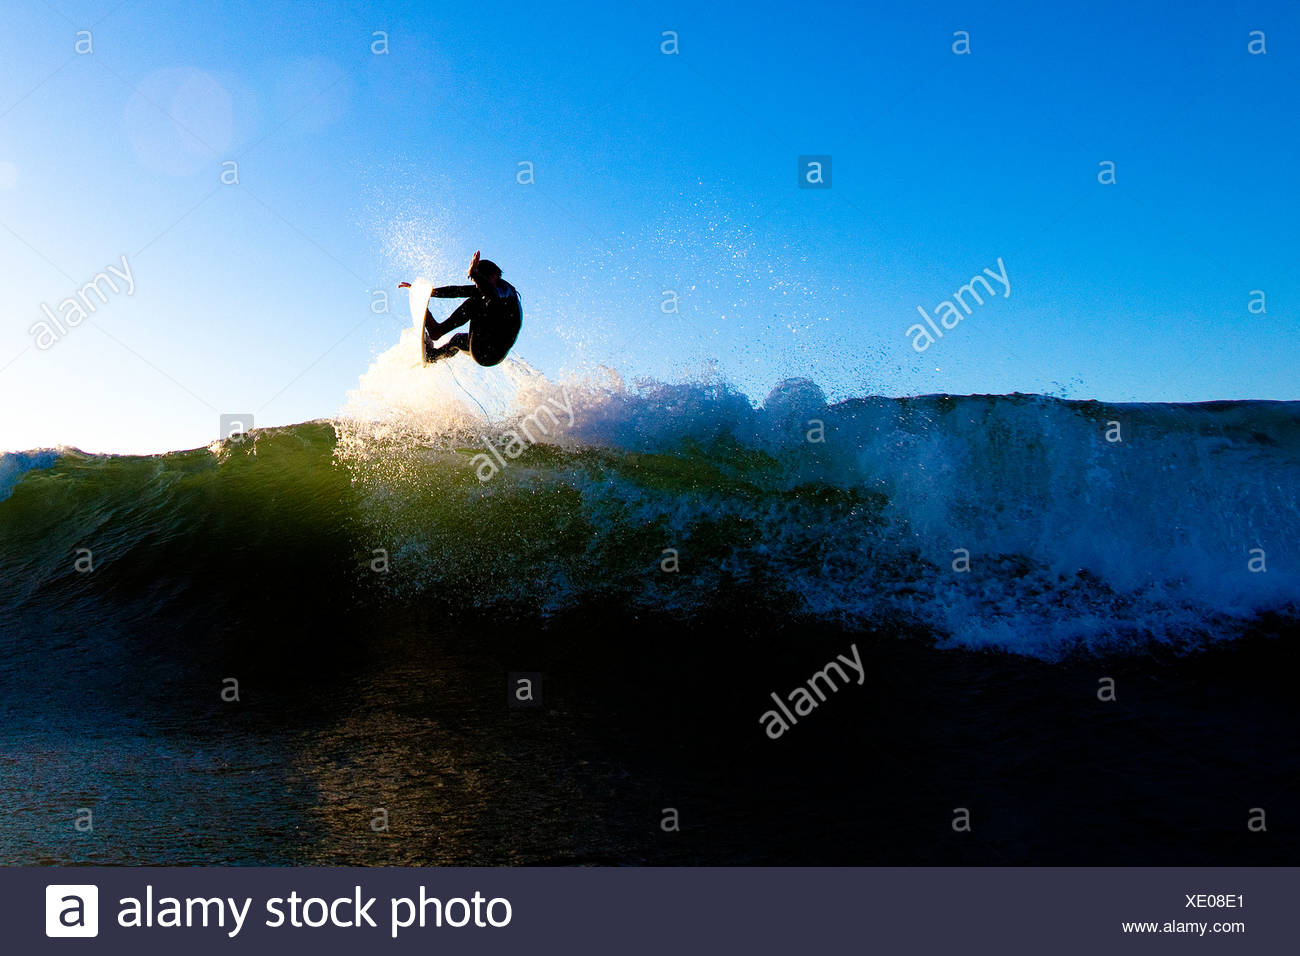 A skilled male surfer launches an air. - Stock Image